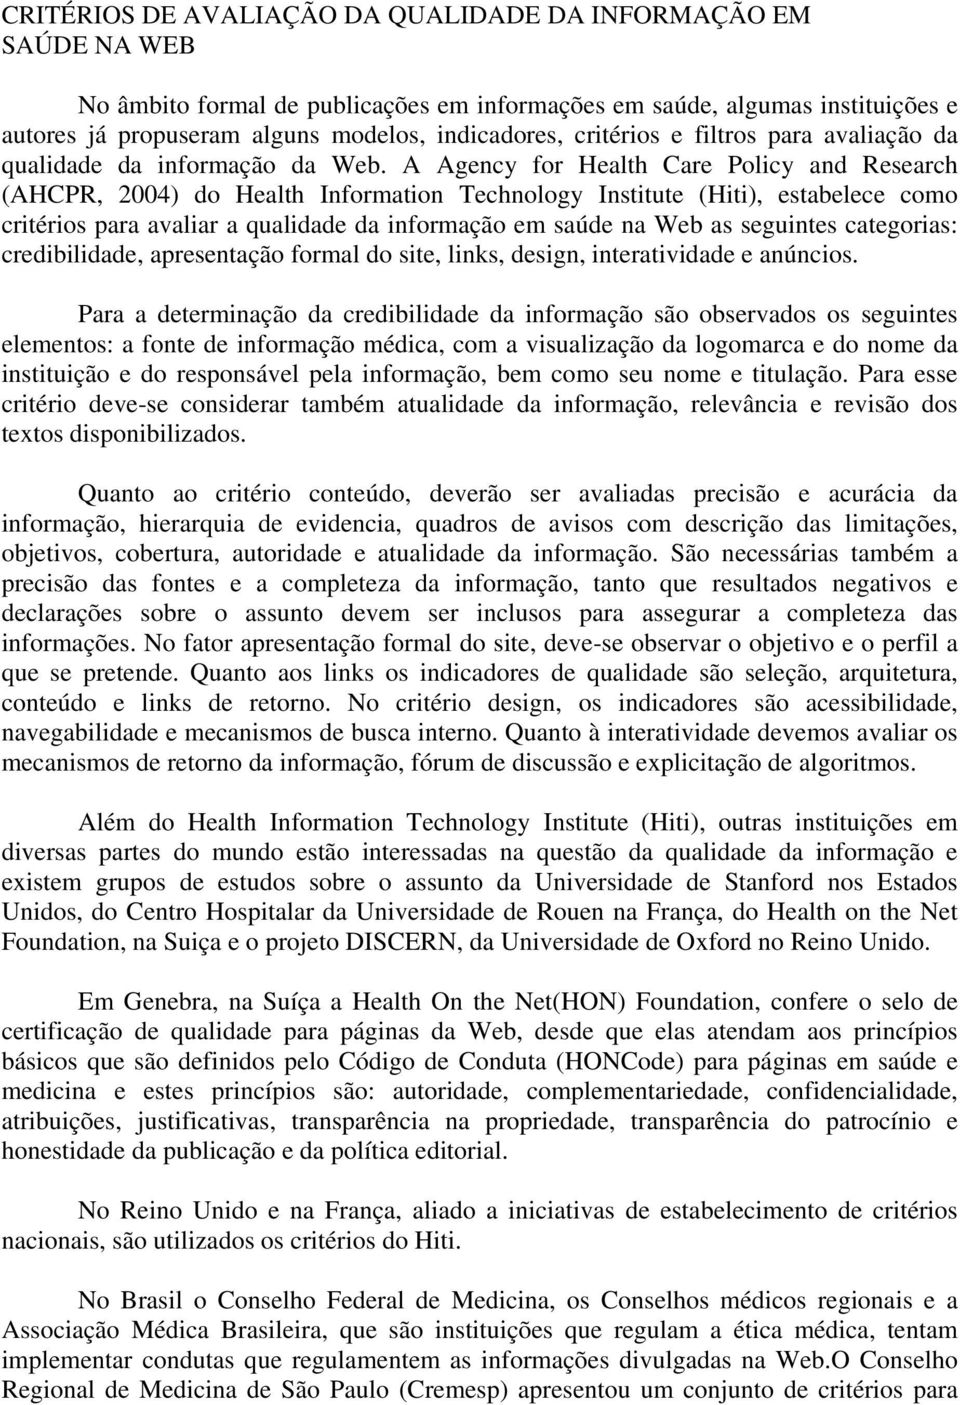 A Agency for Health Care Policy and Research (AHCPR, 2004) do Health Information Technology Institute (Hiti), estabelece como critérios para avaliar a qualidade da informação em saúde na Web as